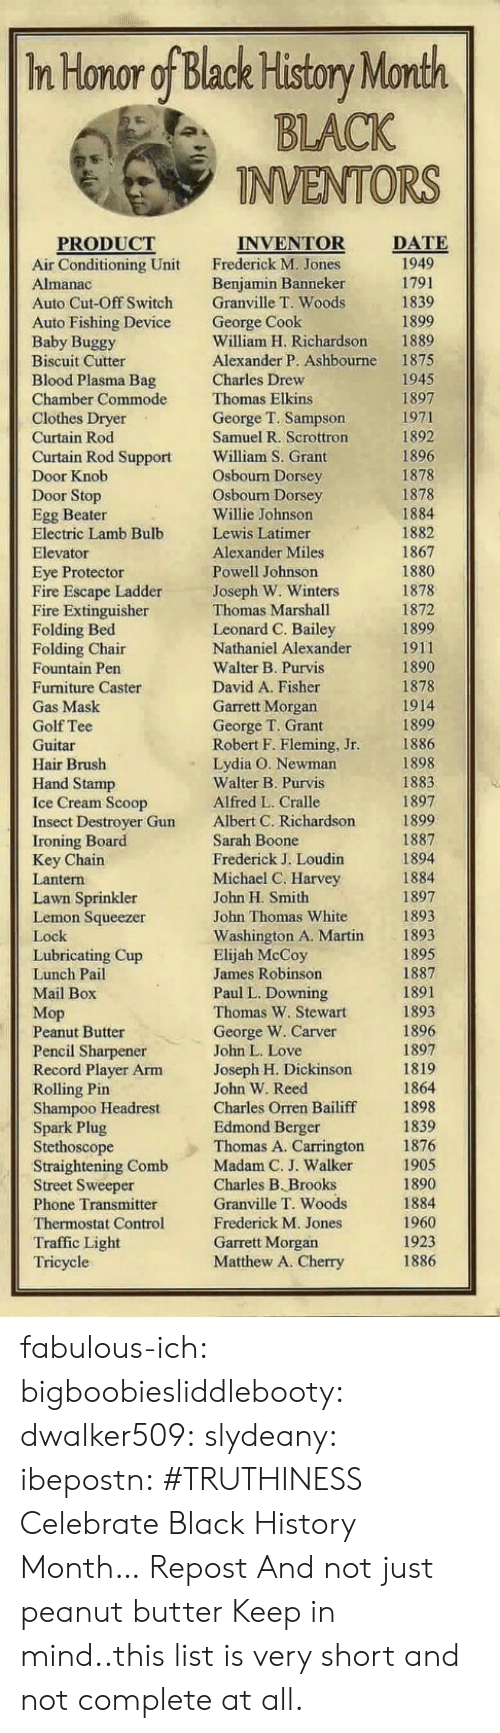 Black History Month, Fire, and Love: In Honor of Black History Month  BLACK  INVENTORS  DATE  PRODUCT  Air Conditioning Unit  Auto Cut-Off Switch  Auto Fishing Device  Baby Buggy  Biscuit Cutter  Blood Plasma Bag  Chamber Commode  INVENTOR  Frederick M. Jones  Benjamin Banneker  Granville T. Woods  George Cook  William H. Richardson  Alexander P. Ashbourne  1889  1875  1945  ew  Thomas Elkins  George T. Sampson  Samuel R. Scrottron  William S. Grant  Osbourn Dorsey  Osbourn Dorsey  Willie Johnson  Lewis Latimer  Alexander Miles  Powell Johnson  Joseph W. Winters  Thomas Marshall  Leonard C. Bailey  Nathaniel Alexander  Walter B. Purvis  David A. Fisher  Garrett Morgan  George T. Grant  Robert F. Fleming, Jr  Lydia O. Newman  Walter B. Purvis  Alfred L. Cralle  Albert C. Richardson  Sarah Boone  Frederick J. Loudin  Michael C. Harvey  John H. Smith  John Thomas White  Washington A. Martin  Elijah McCoy  James Robinson  Paul L. Downing  Thomas W. Stewart  George W. Carver  John L. Love  Joseph H. Dickinsorn  John W. Reed  Charles Orren Bailiff  Edmond Berger  Thomas A. Carrington  Curtain Rod Support  1878  Egg Beater  Electric Lamb Bulb  Eye Protector  Fire Escape Ladder  Fire Extinguisher  Folding Bed  1867  1878  1899  ir  Fountain Pen  Furniture Caster  1878  1899  1898  1897  Hand Stamp  Insect Destroyer Gun  Key Chain  Lawn Sprinkler  1897  Lemon Squeezer  1893  Lubricating Cup  Мор  Peanut Butter  Pencil Sharpener  Record Player Arm  Shampoo Headrest  Spark Plug  Stethoscope  Straightening Comb  Street Sweeper  Phone Transmitter  Thermostat Control  Traffic Light  1898  1876  1905  Madam C. J. Walke  Charles B. Brooks  Granville T. Woods  Frederick M. Jones  Garrett Morgan  Matthew A. Cherry  1960  1923  1886  ric fabulous-ich:  bigboobiesliddlebooty:  dwalker509:  slydeany:  ibepostn:  #TRUTHINESS  Celebrate Black History Month…  Repost  And not just peanut butter  Keep in mind..this list is very short and not complete at all.